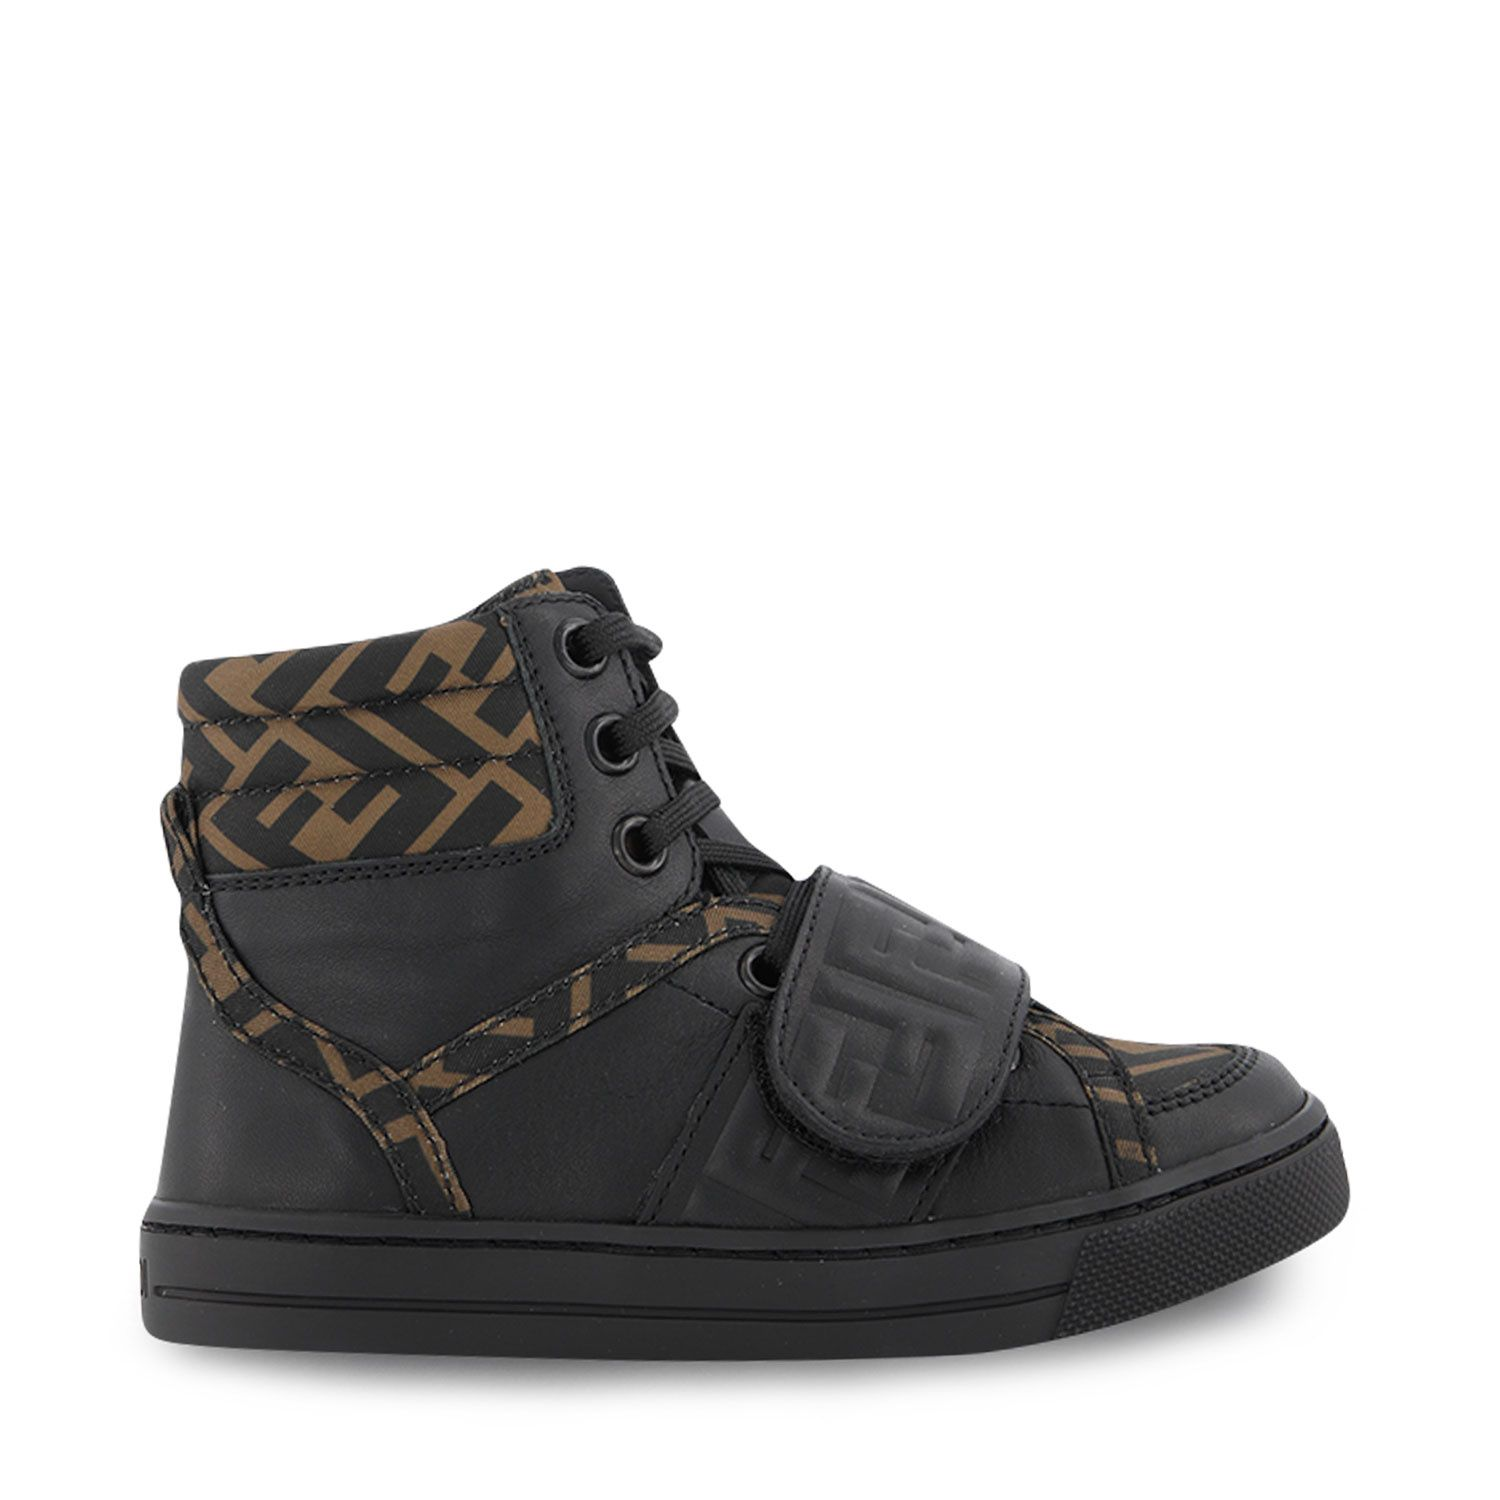 Picture of Fendi JMR351 kids sneakers black